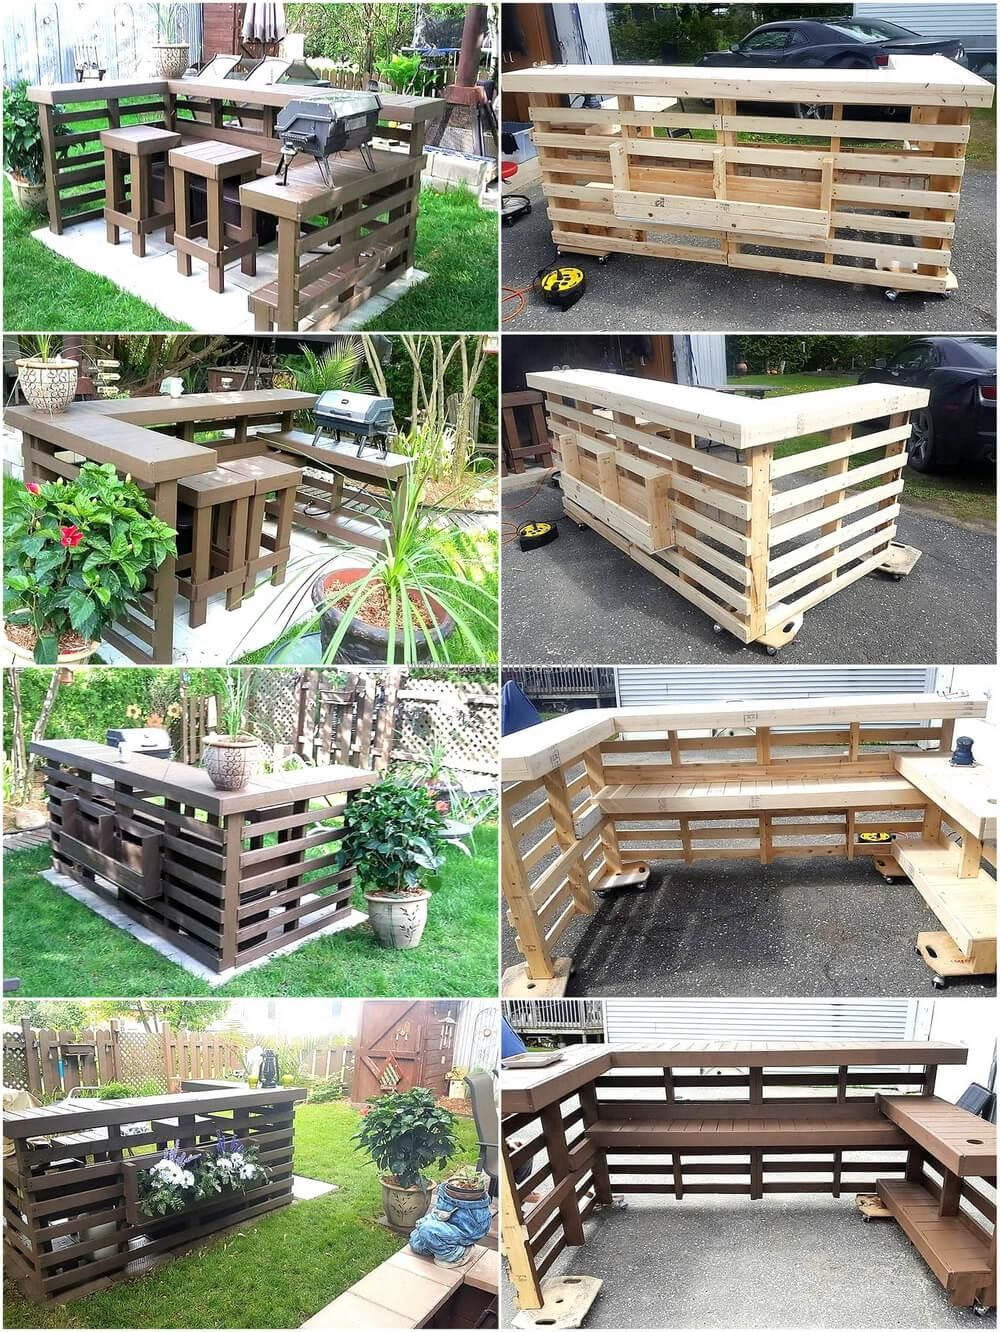 Wood Pallets Garden BBQ Bar Terrace | DIY Drvenarija | Pinterest ...